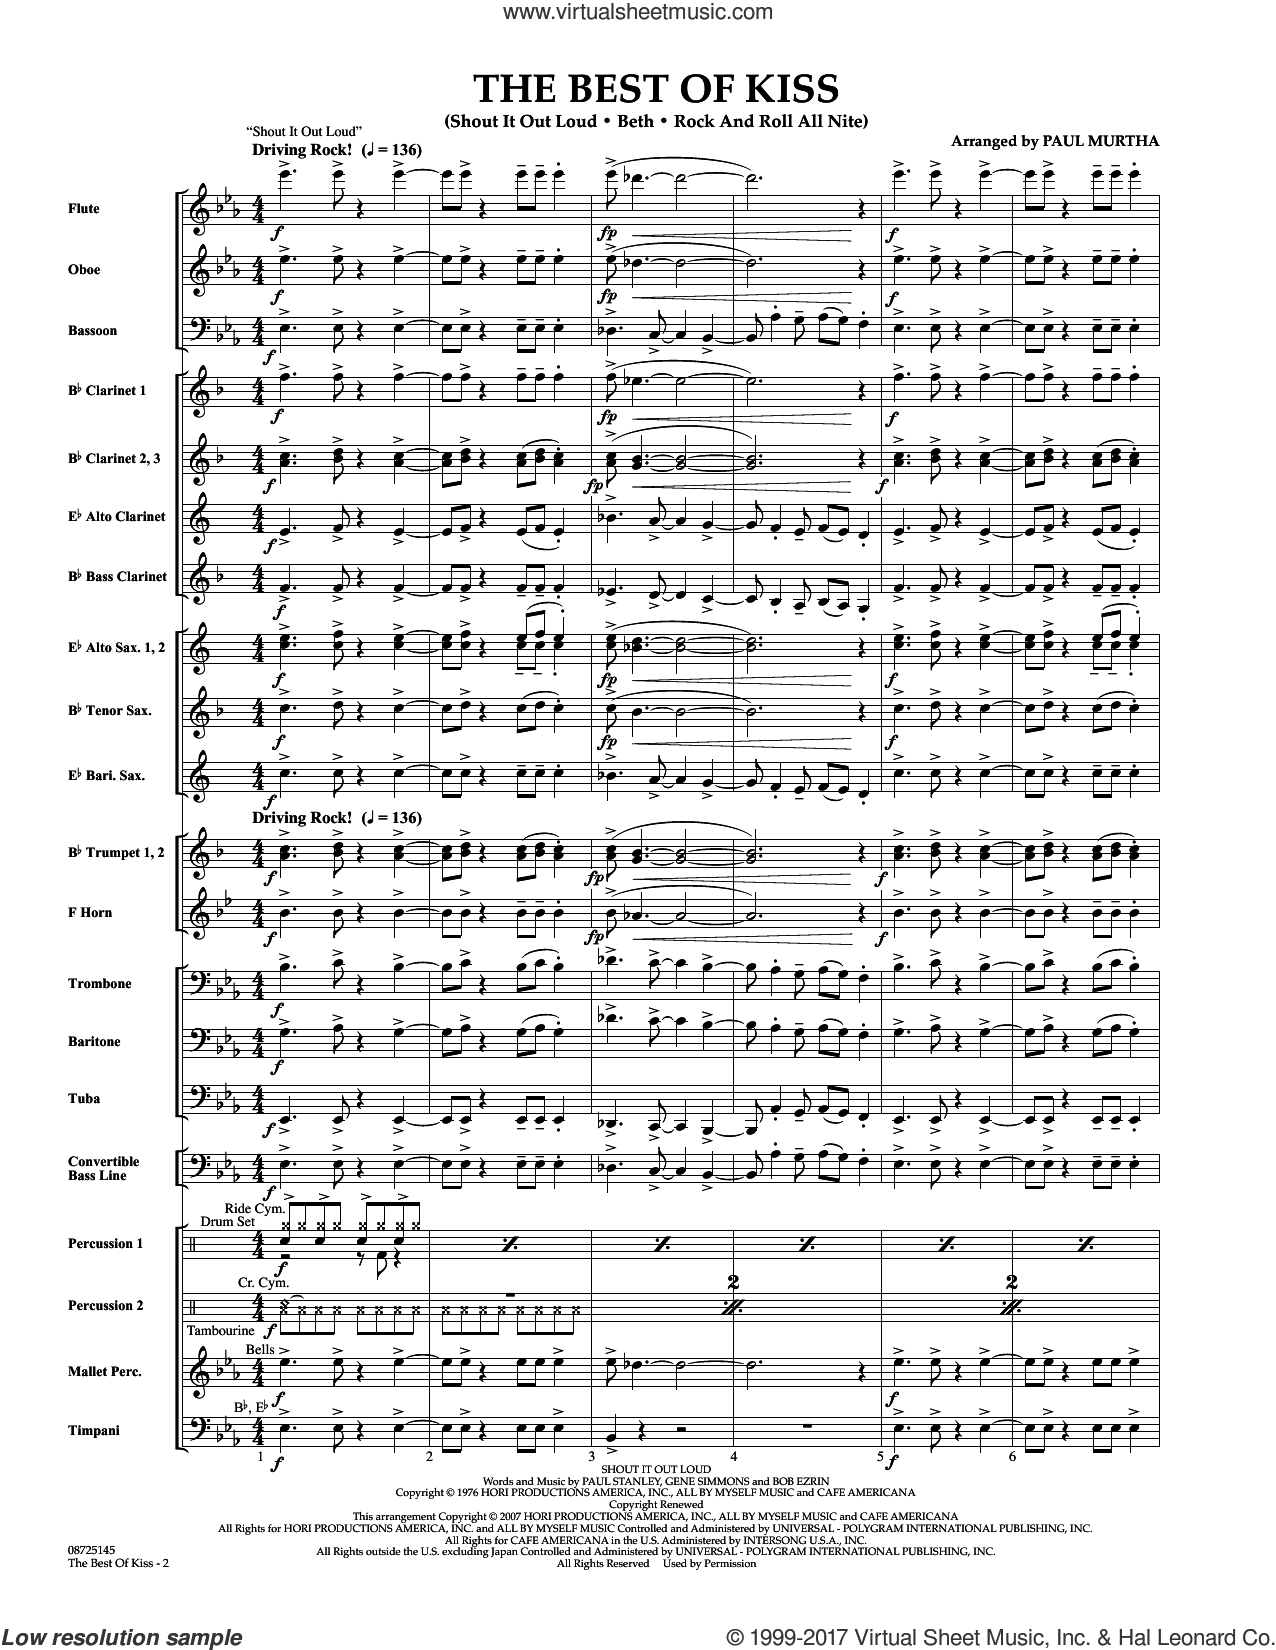 The Best of Kiss (COMPLETE) sheet music for concert band by Paul Murtha, intermediate skill level